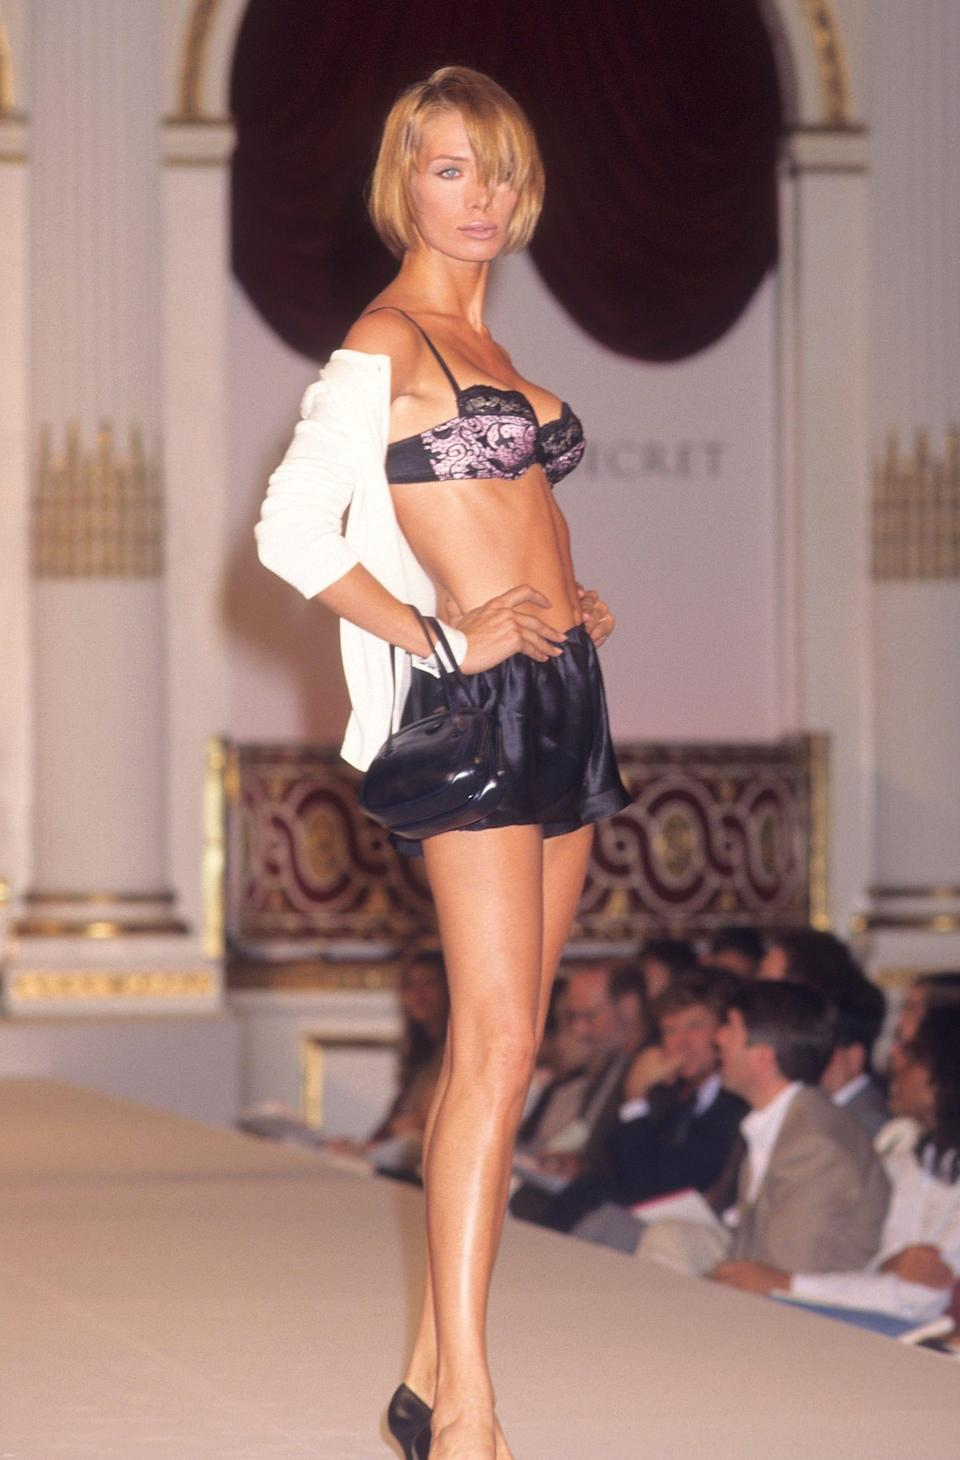 The first Victoria's Secret fashion show was held in 1995 in New York.